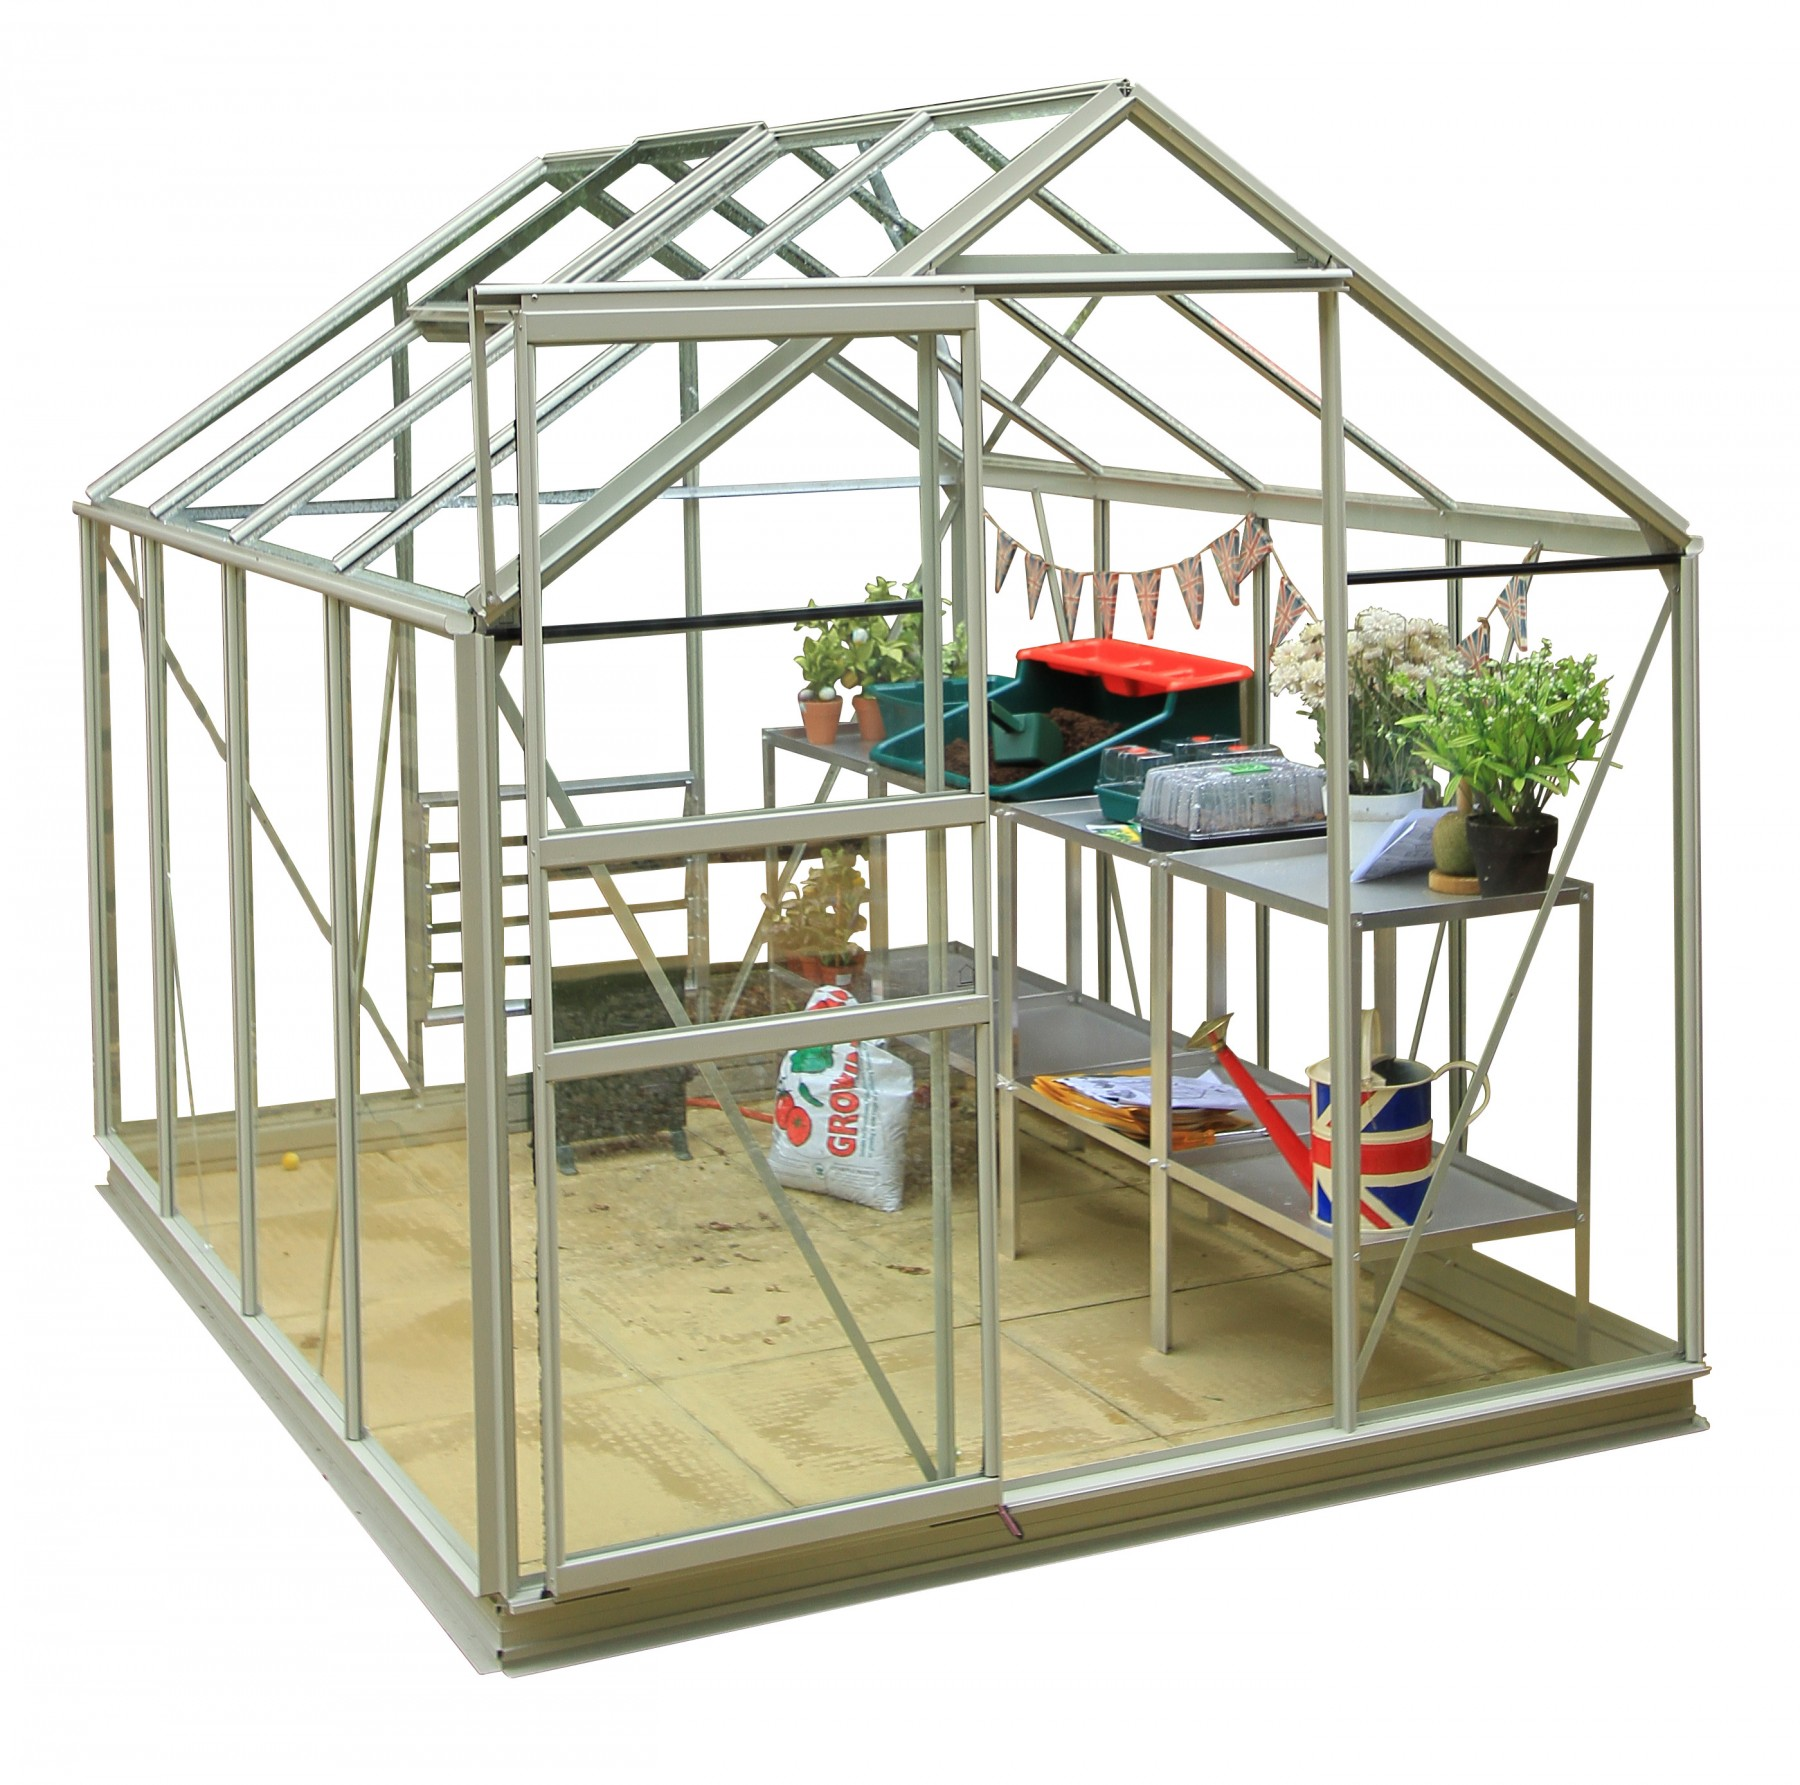 simplicity classic pastel sage greenhouse starter package 6ft3 wide 1918mm x 8ft3 long 2538mm